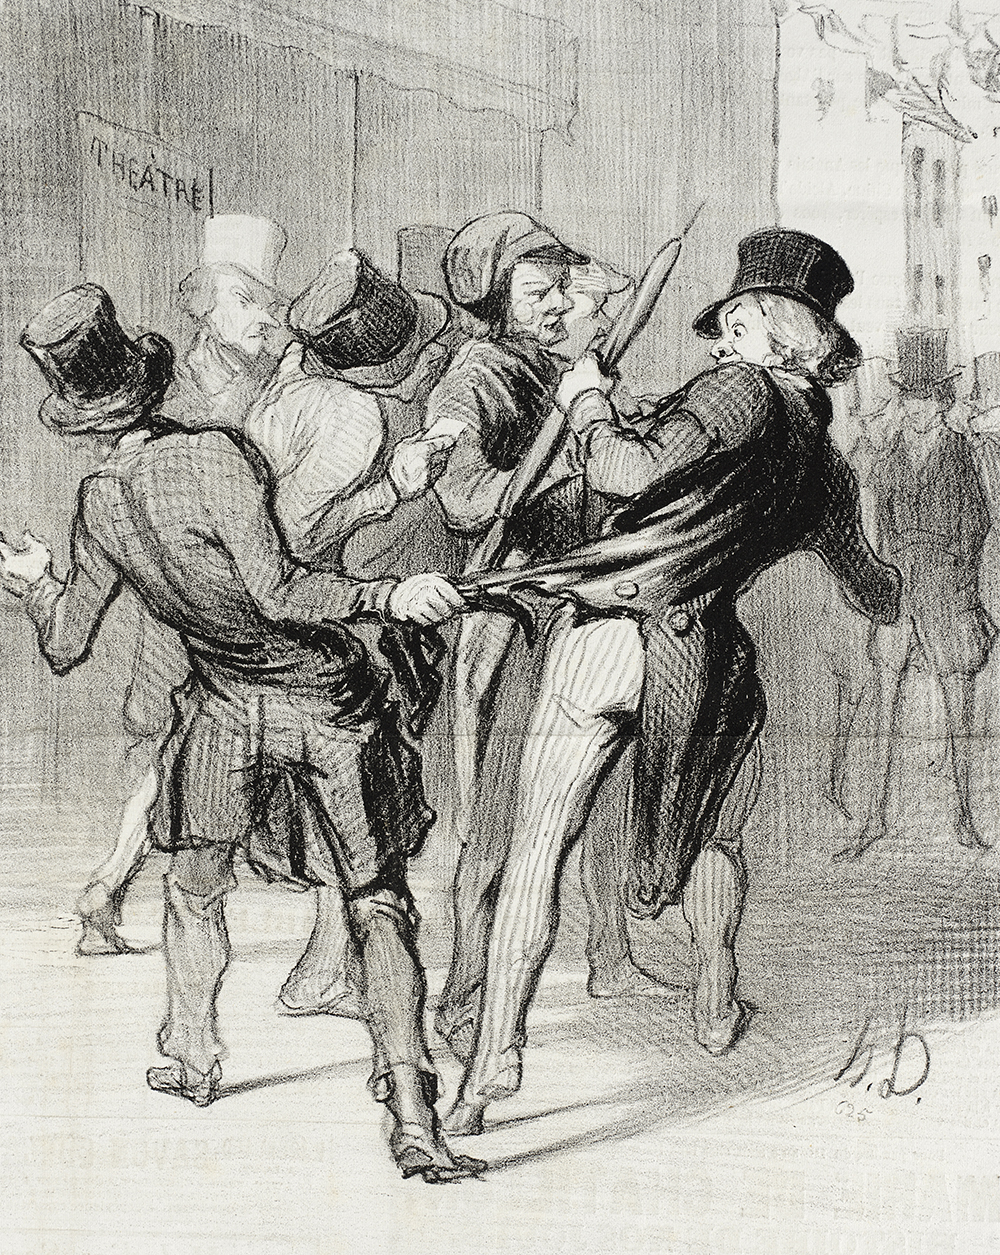 Ce qu'on appelle les séductions de Paris, by Honoré Daumier, 1844. Los Angeles County Museum of Art, Gift of Mrs. Florence Victor from The David and Florence Victor Collection.